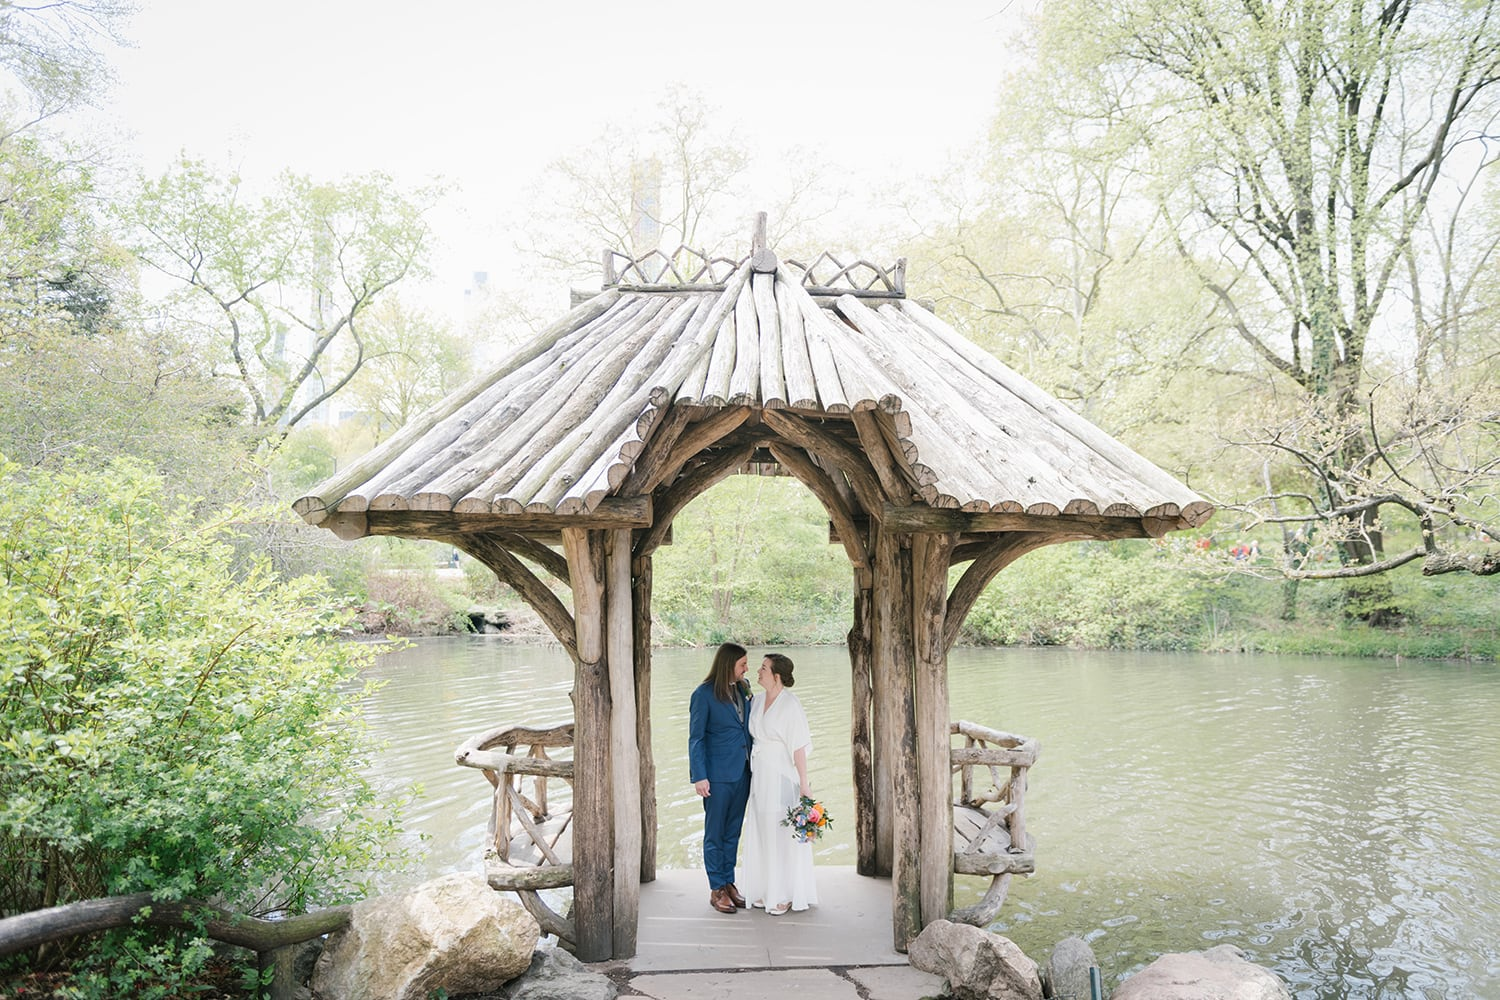 Wagner Cove wedding in Central Park, NYC